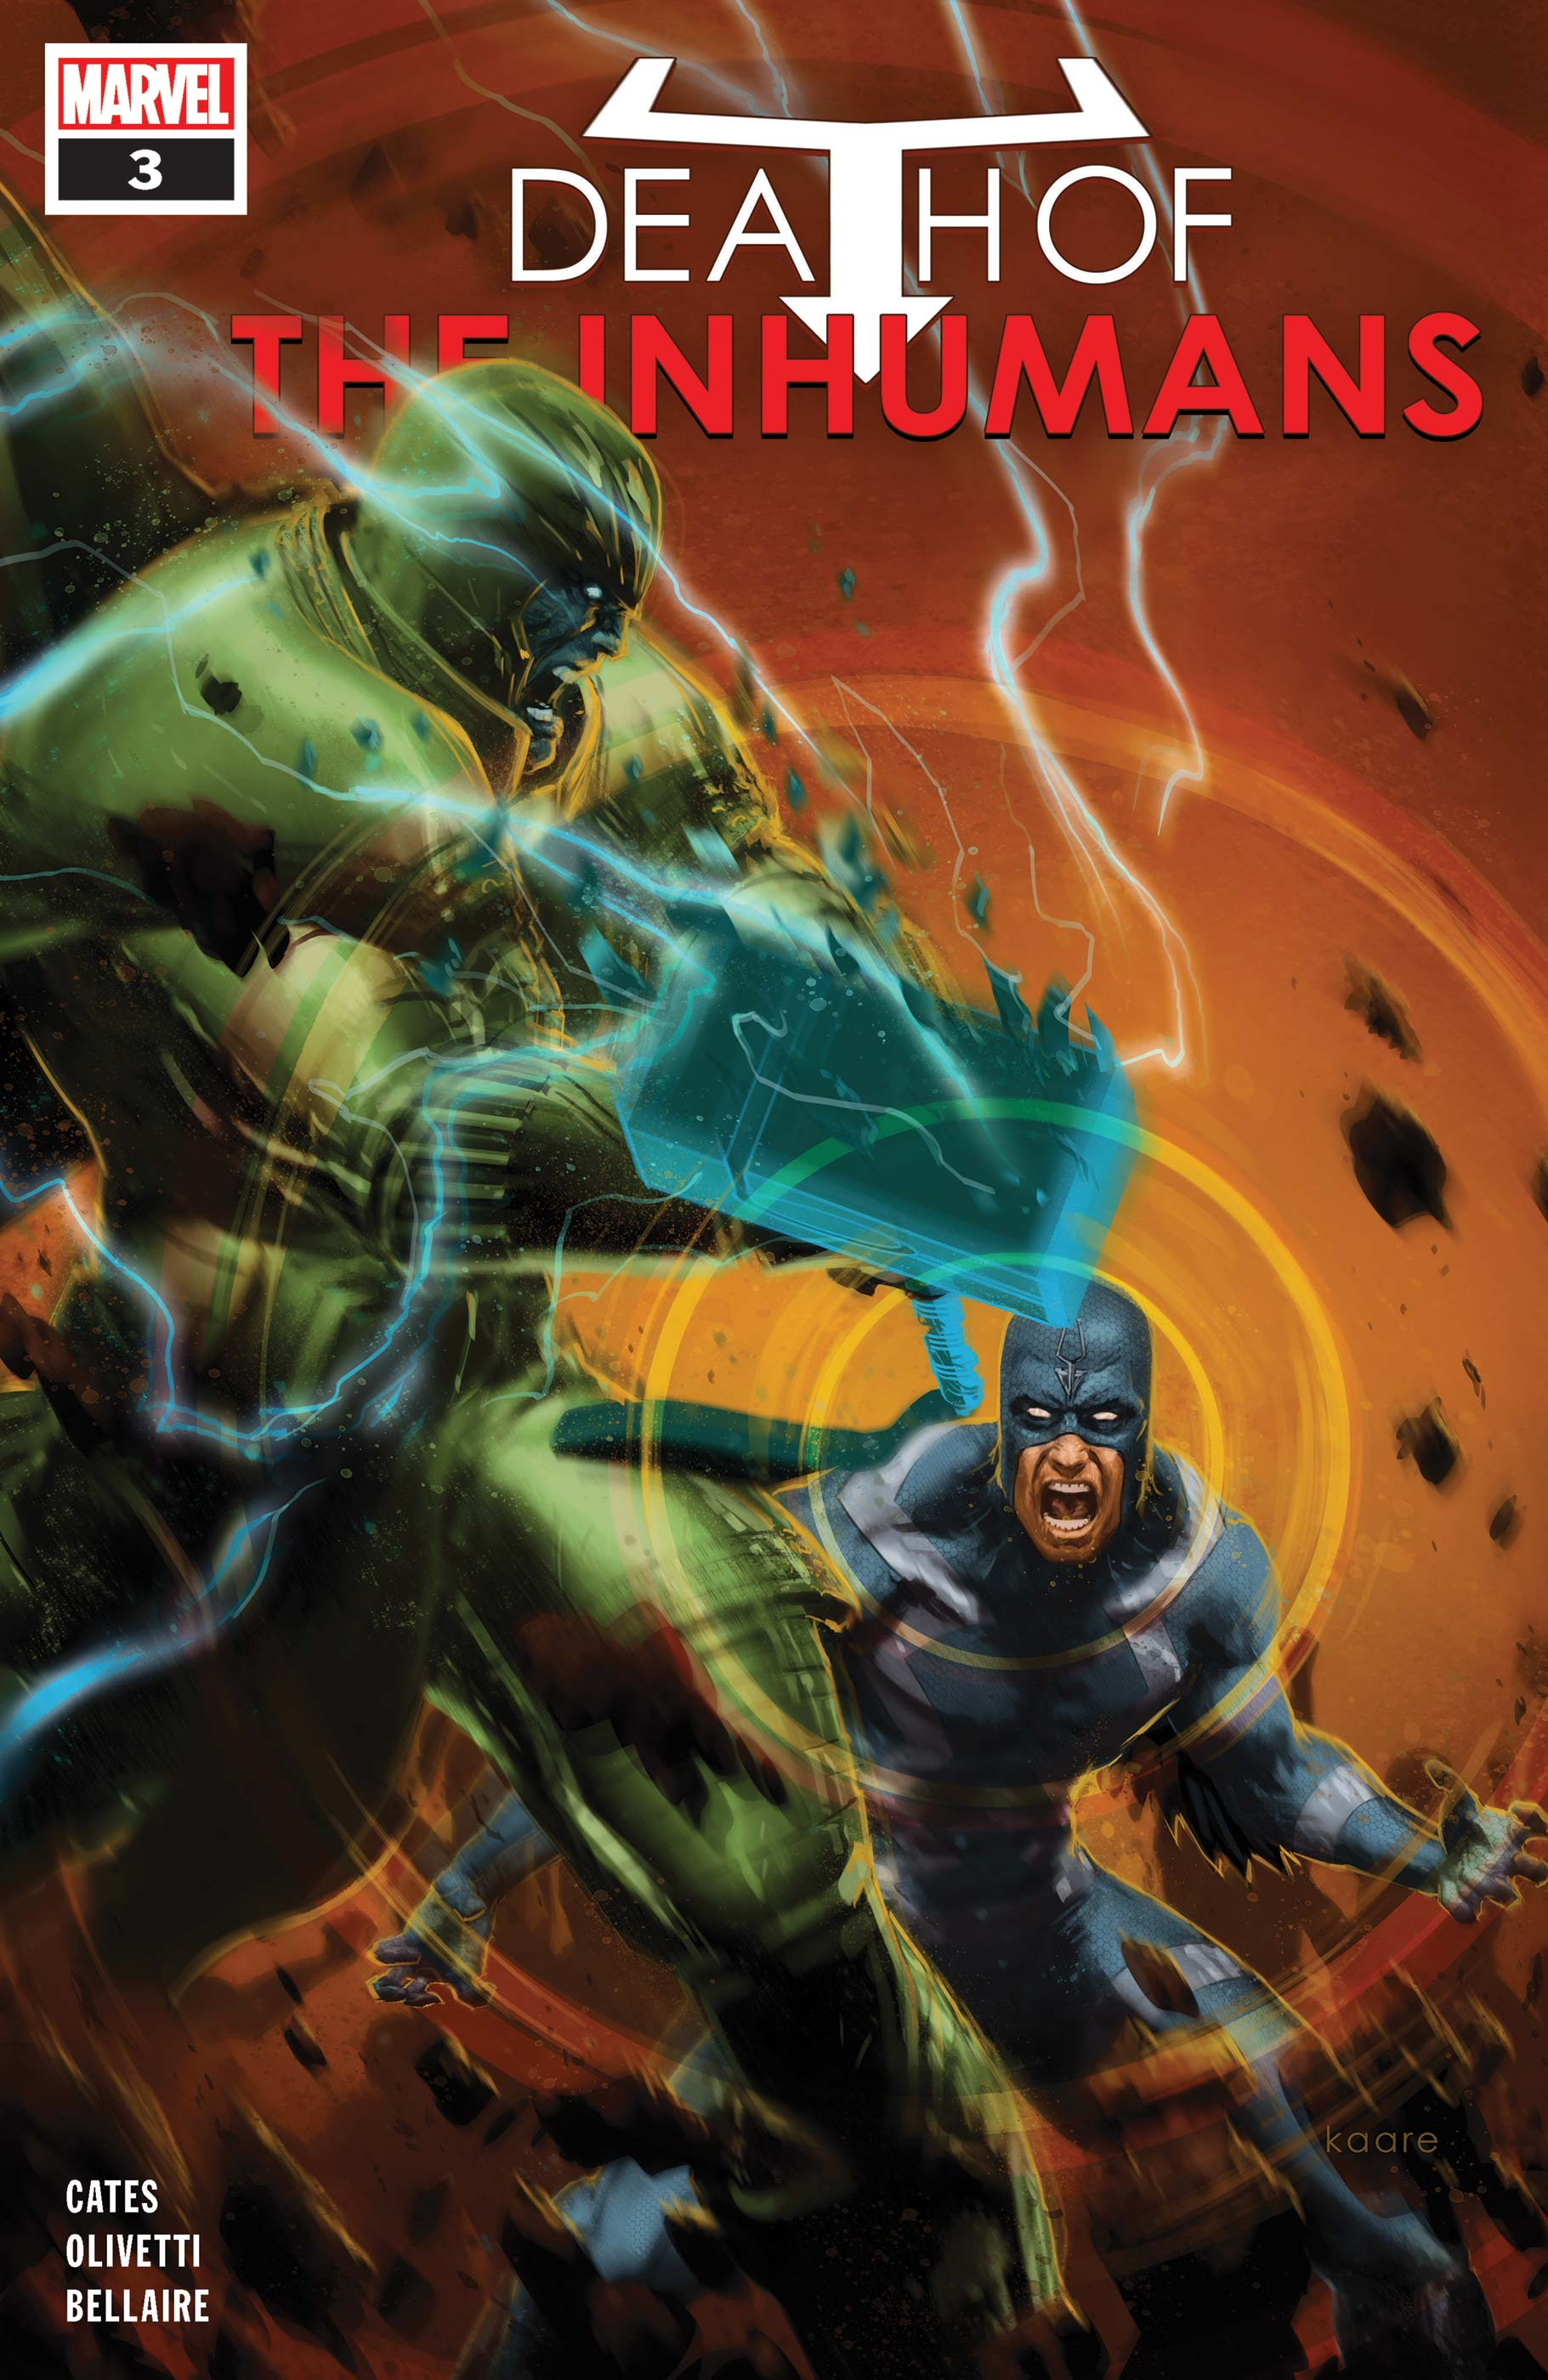 Death of the Inhumans (2018) #3